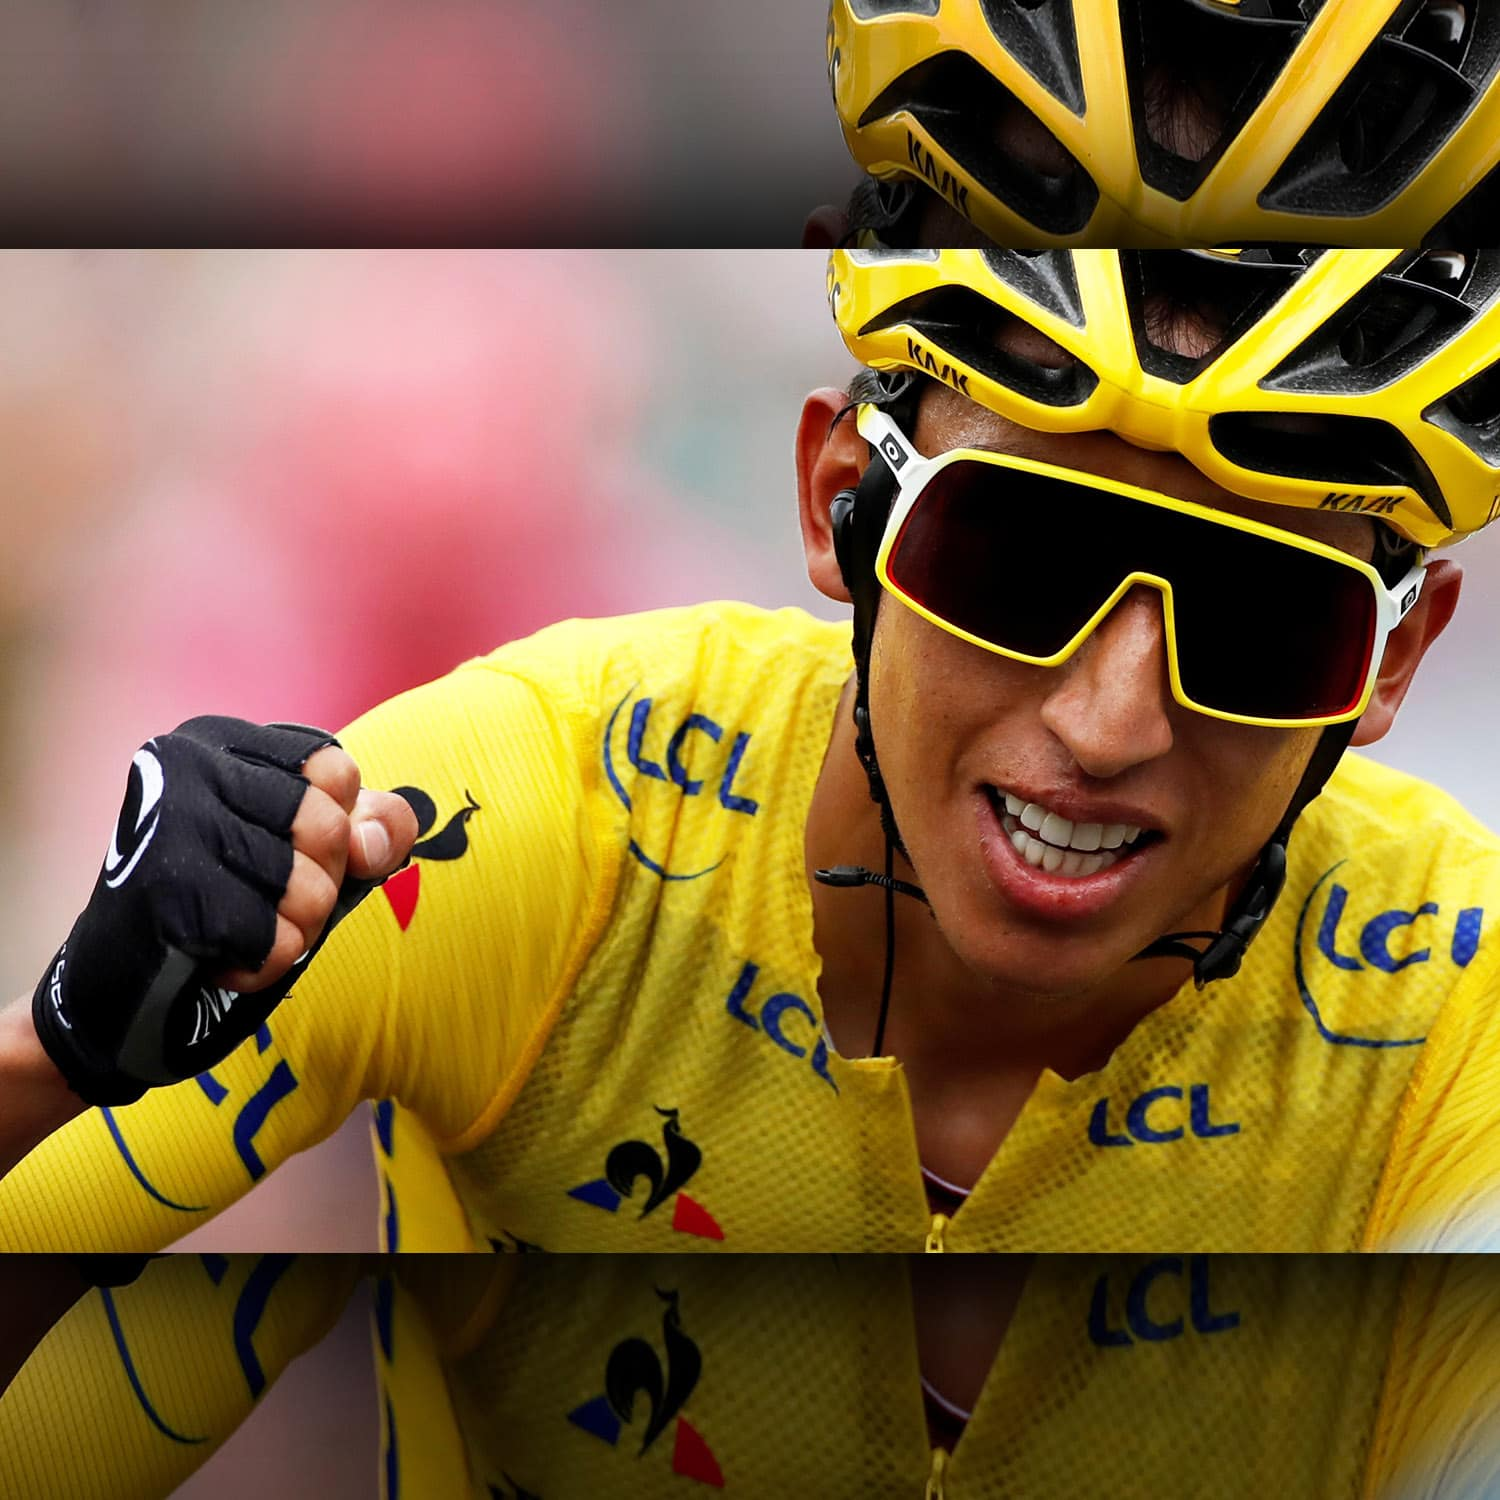 Egan Bernal in yellow jersey - iconic winner of Tour de France